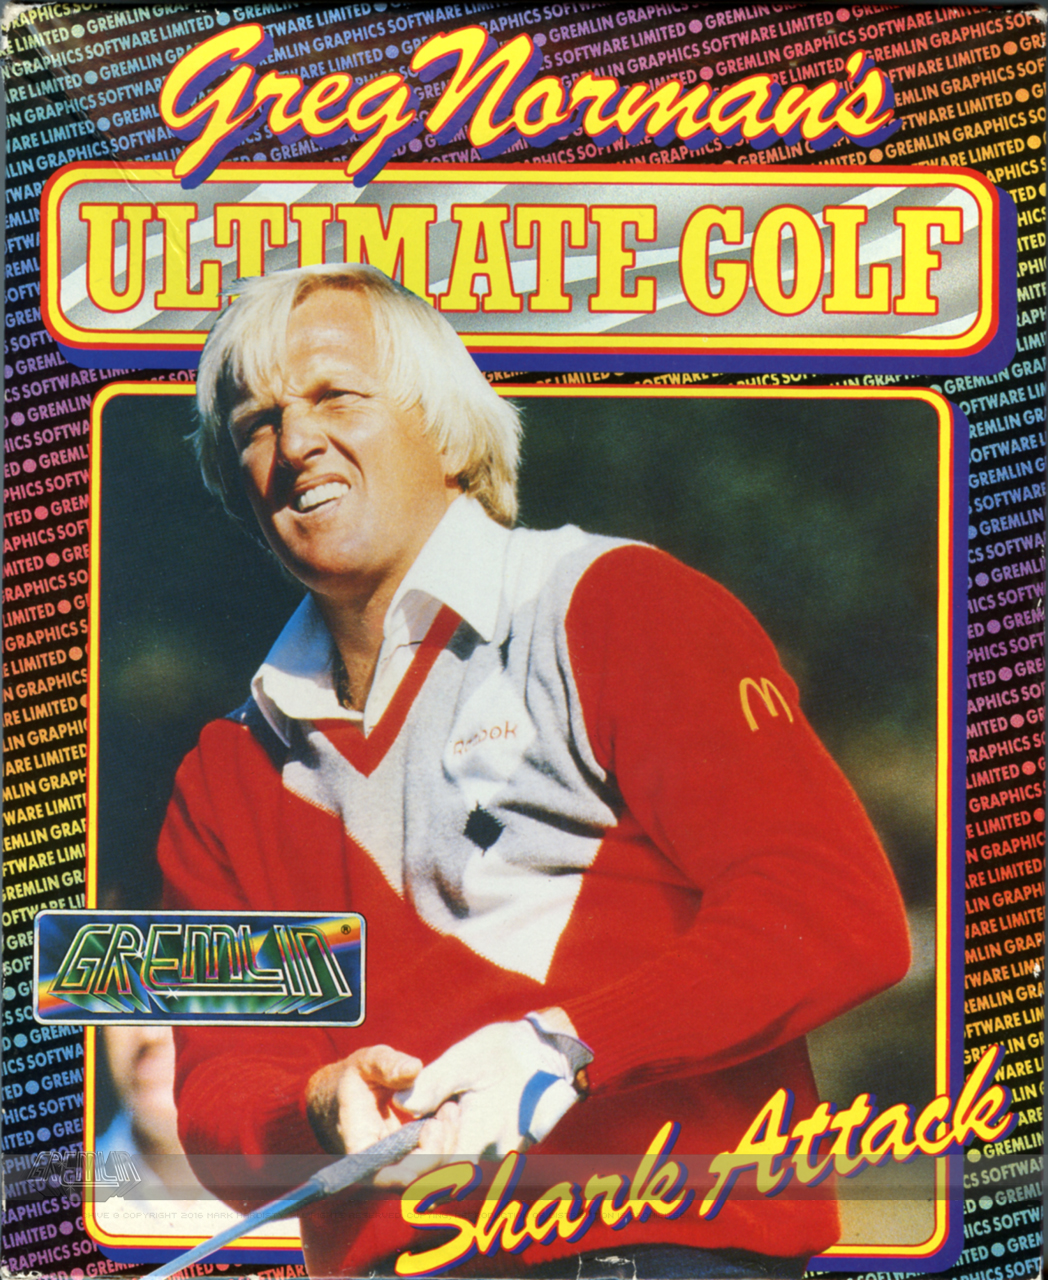 Greg Norman's Ultimate Golf – Shark Attack!